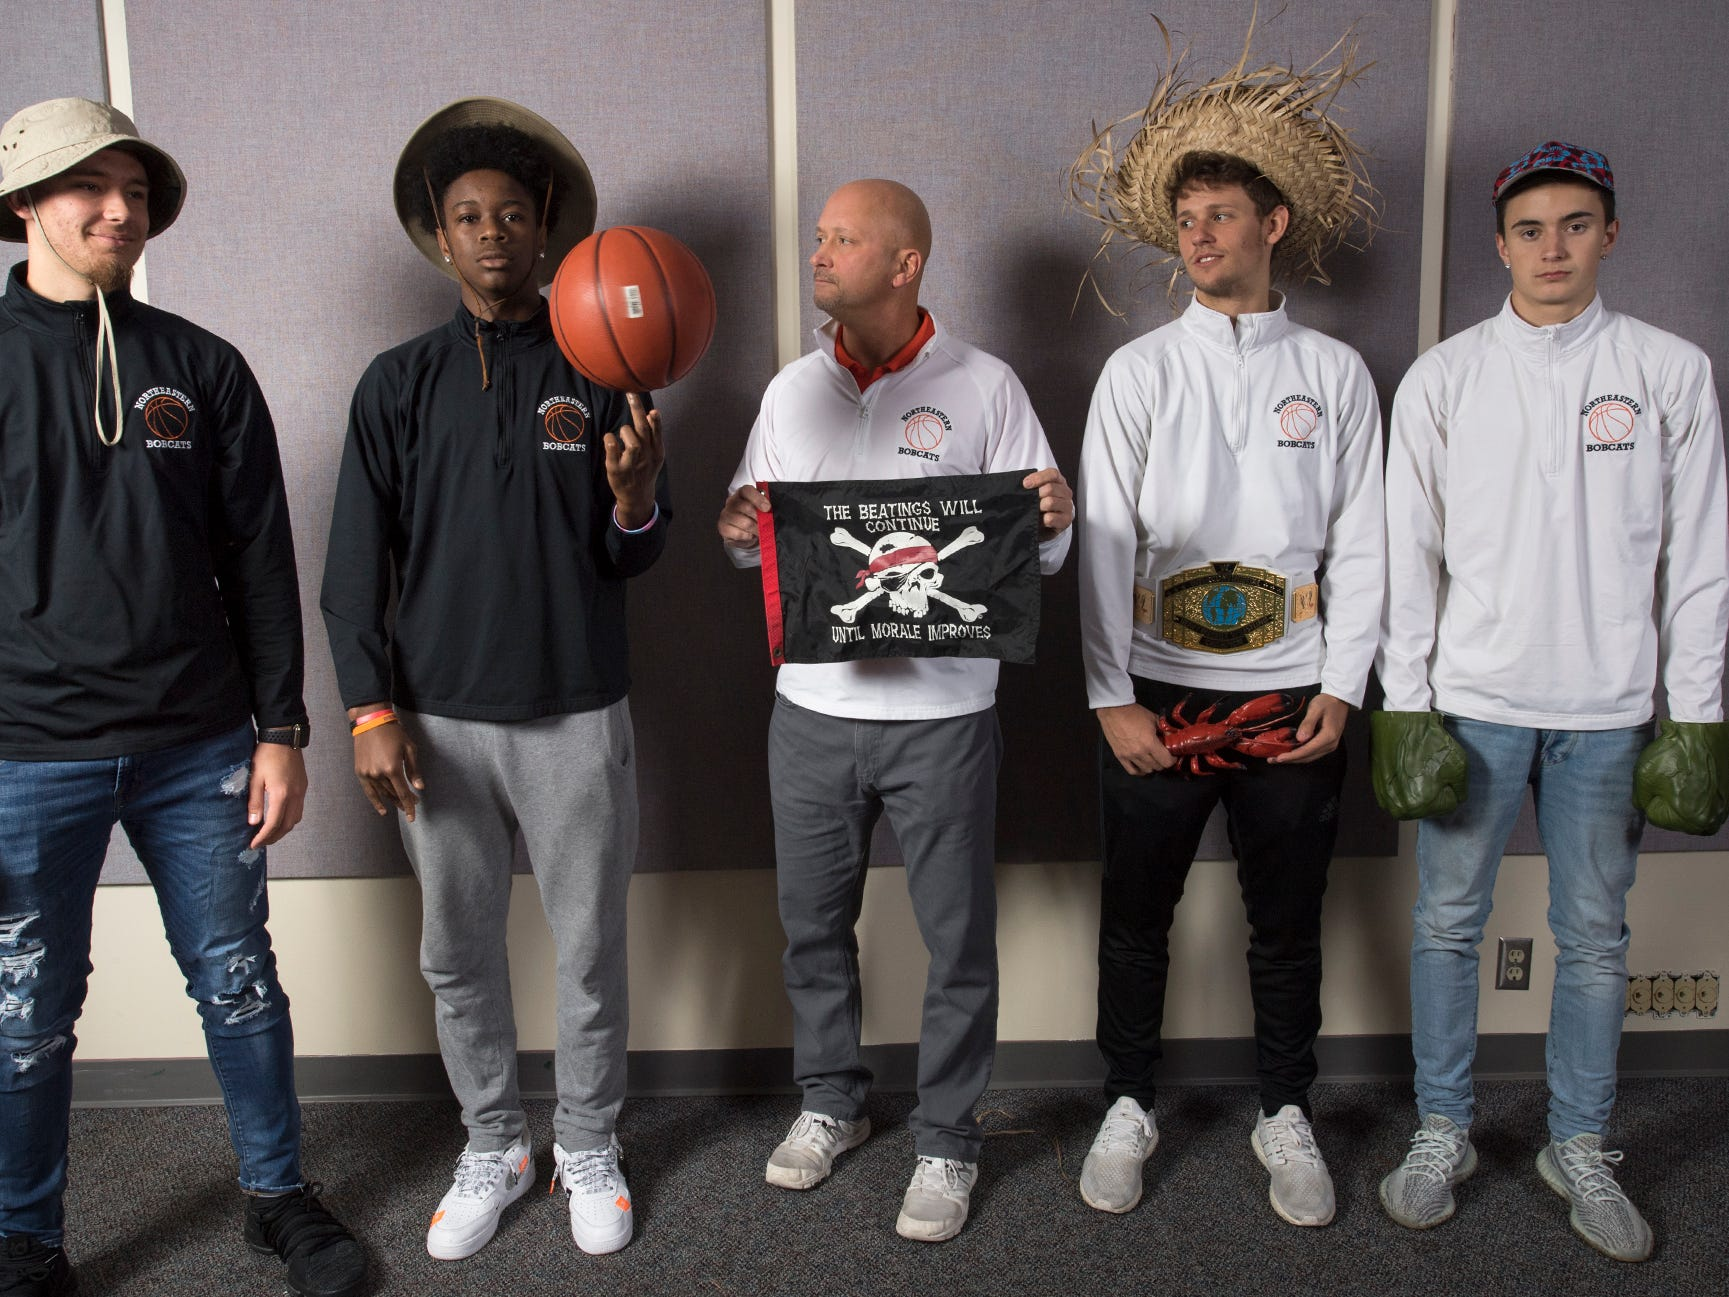 From the left, Zech Sanderson, Quay Mulbauh, Coach Jon Eyster, Nate Wilson and Adam Brodbeck, of the Northeastern High School boys basketball team, pose during the 2018-19 GameTimePa YAIAA Winter Media Day Sunday November 11, 2018.